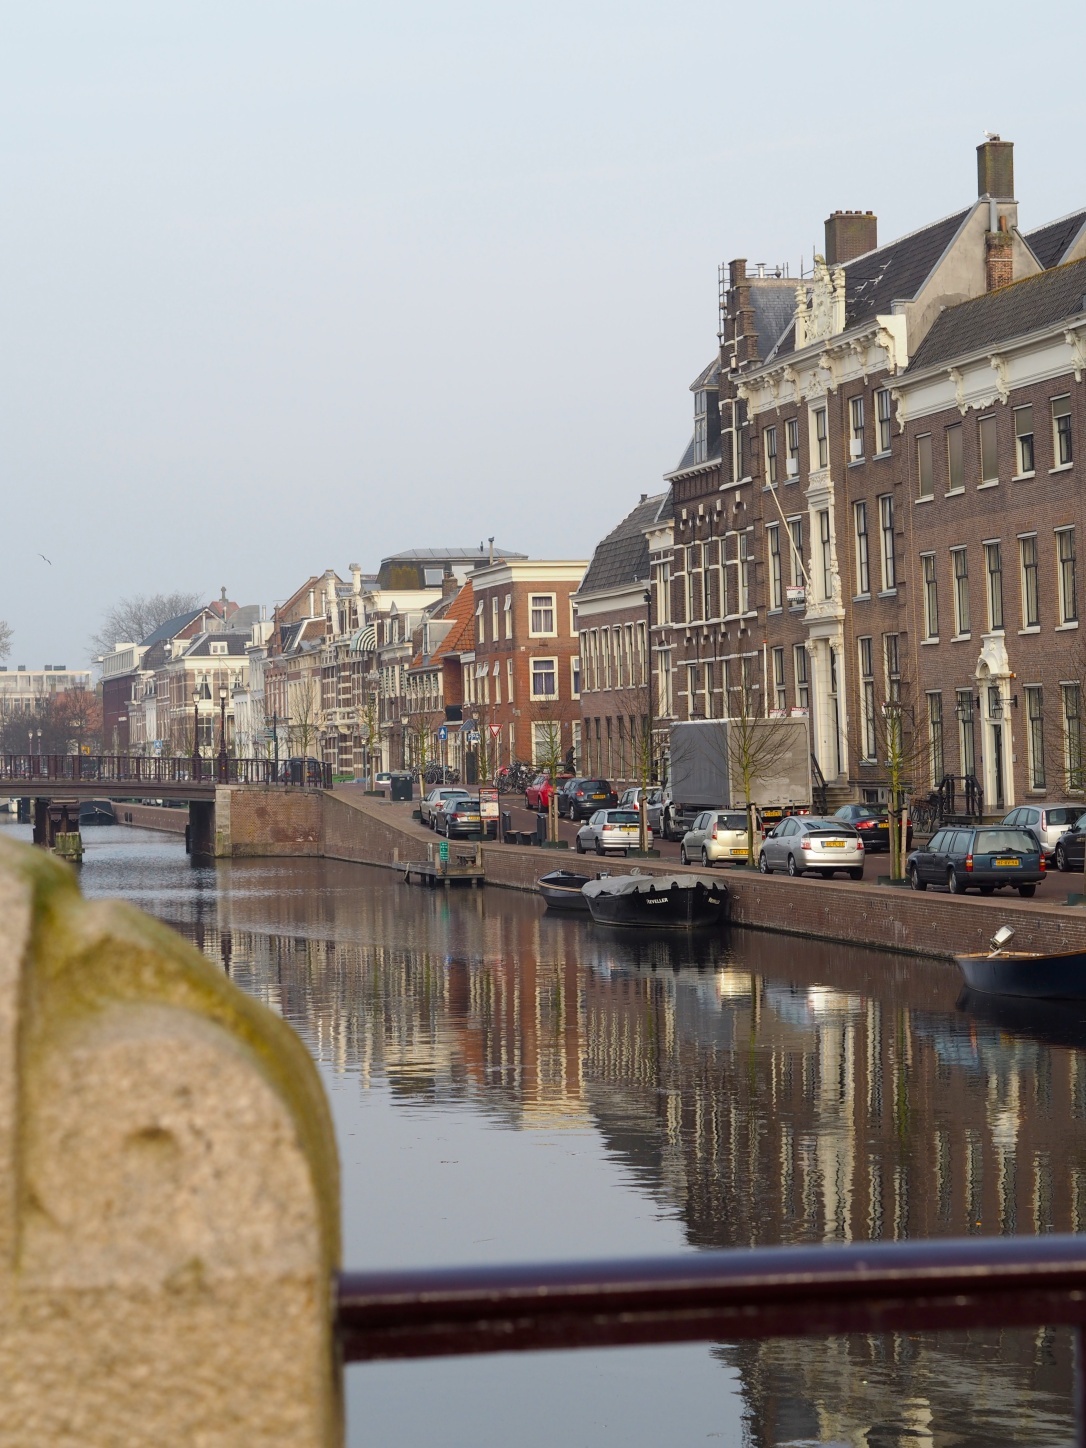 How to spend a day in Haarlem